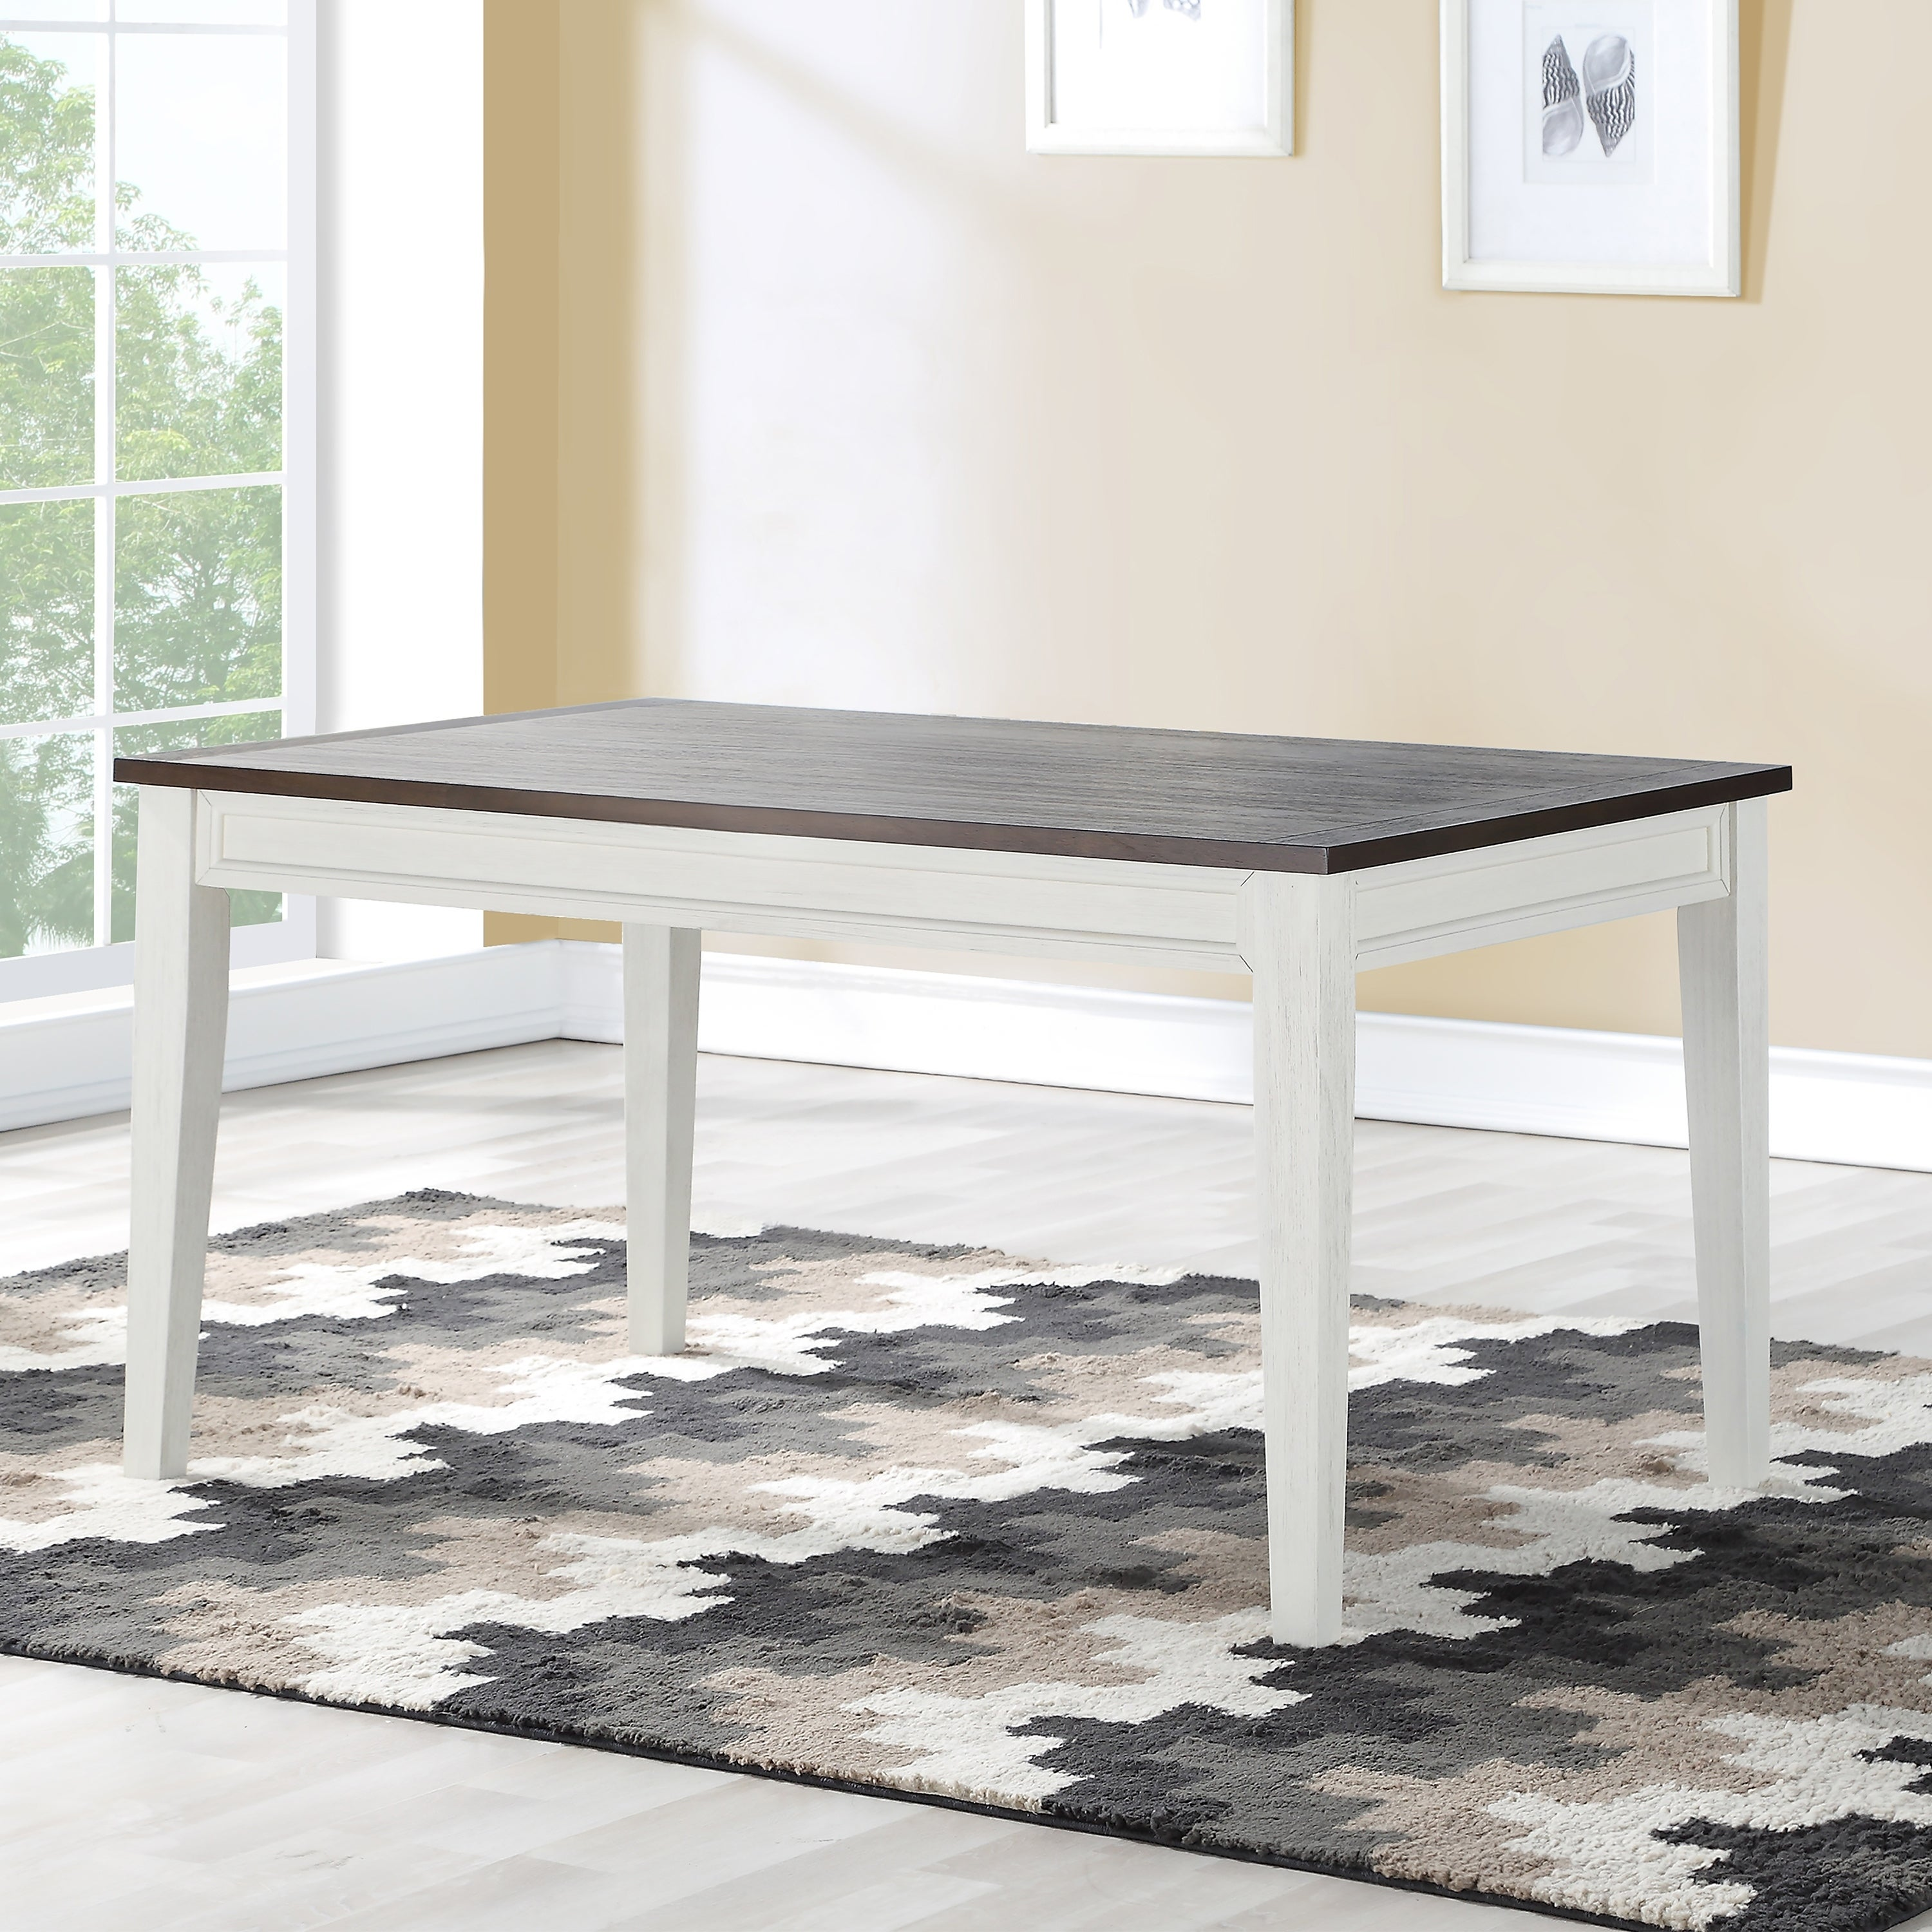 Crestwood Two Tone Farmhouse Wooden Dining Table By Greyson Living Ivory Driftwood On Sale Overstock 28422939